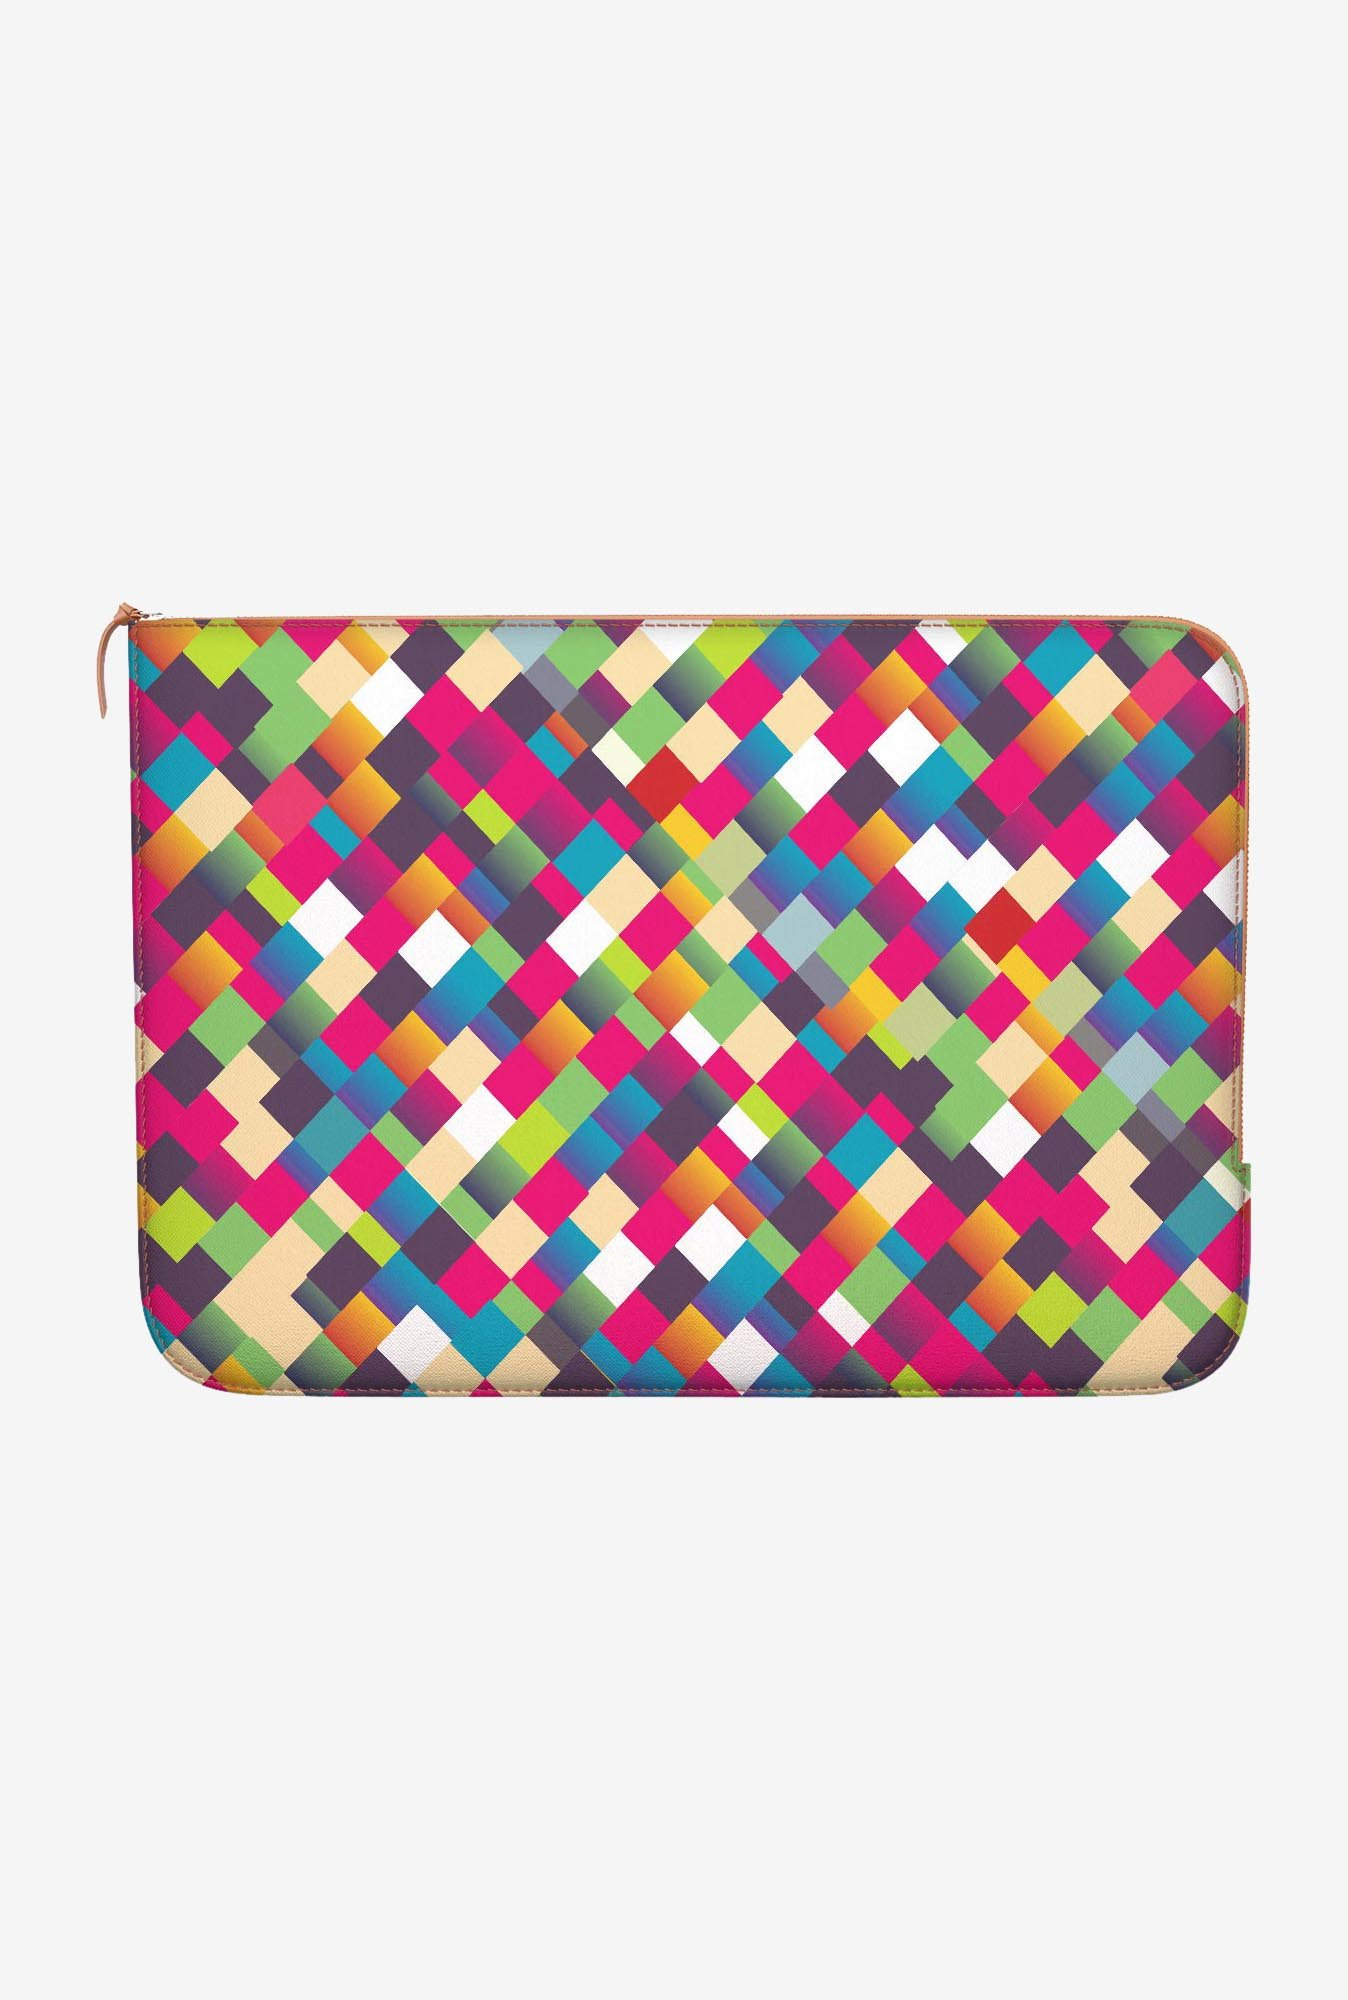 DailyObjects Sweet Pattern MacBook Air 13 Zippered Sleeve